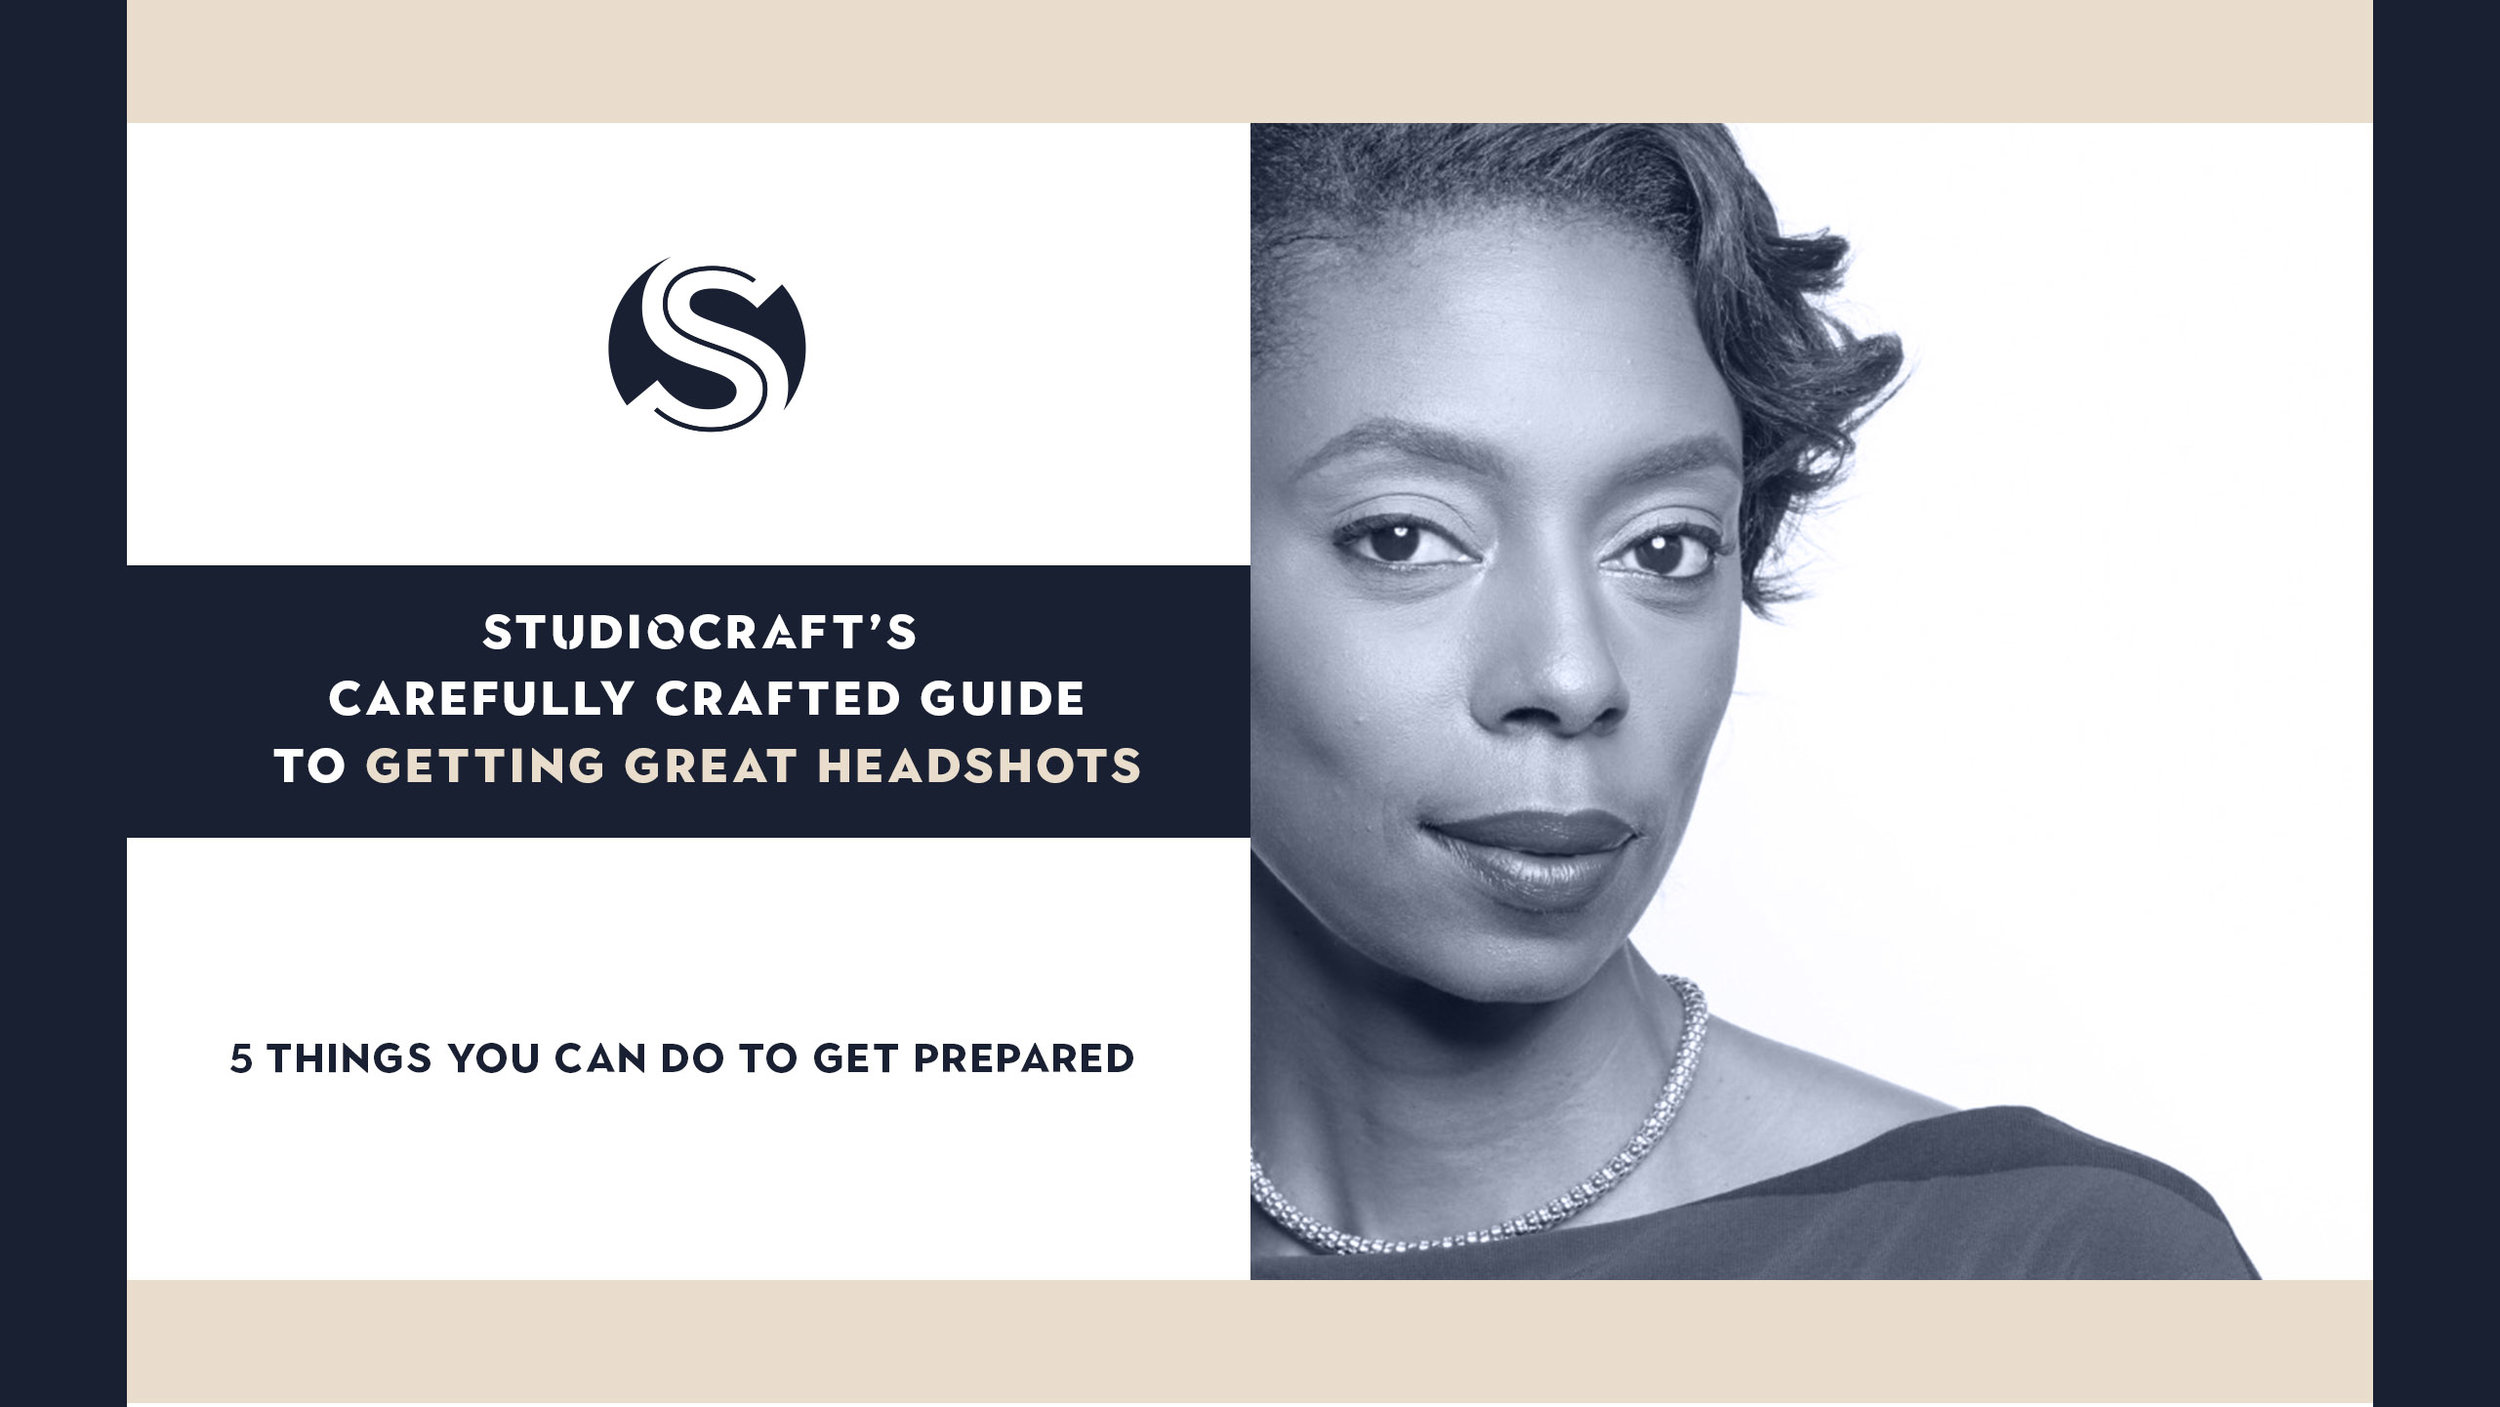 StudioCraft Carefully Crafted Guide Cover Keynote .jpg